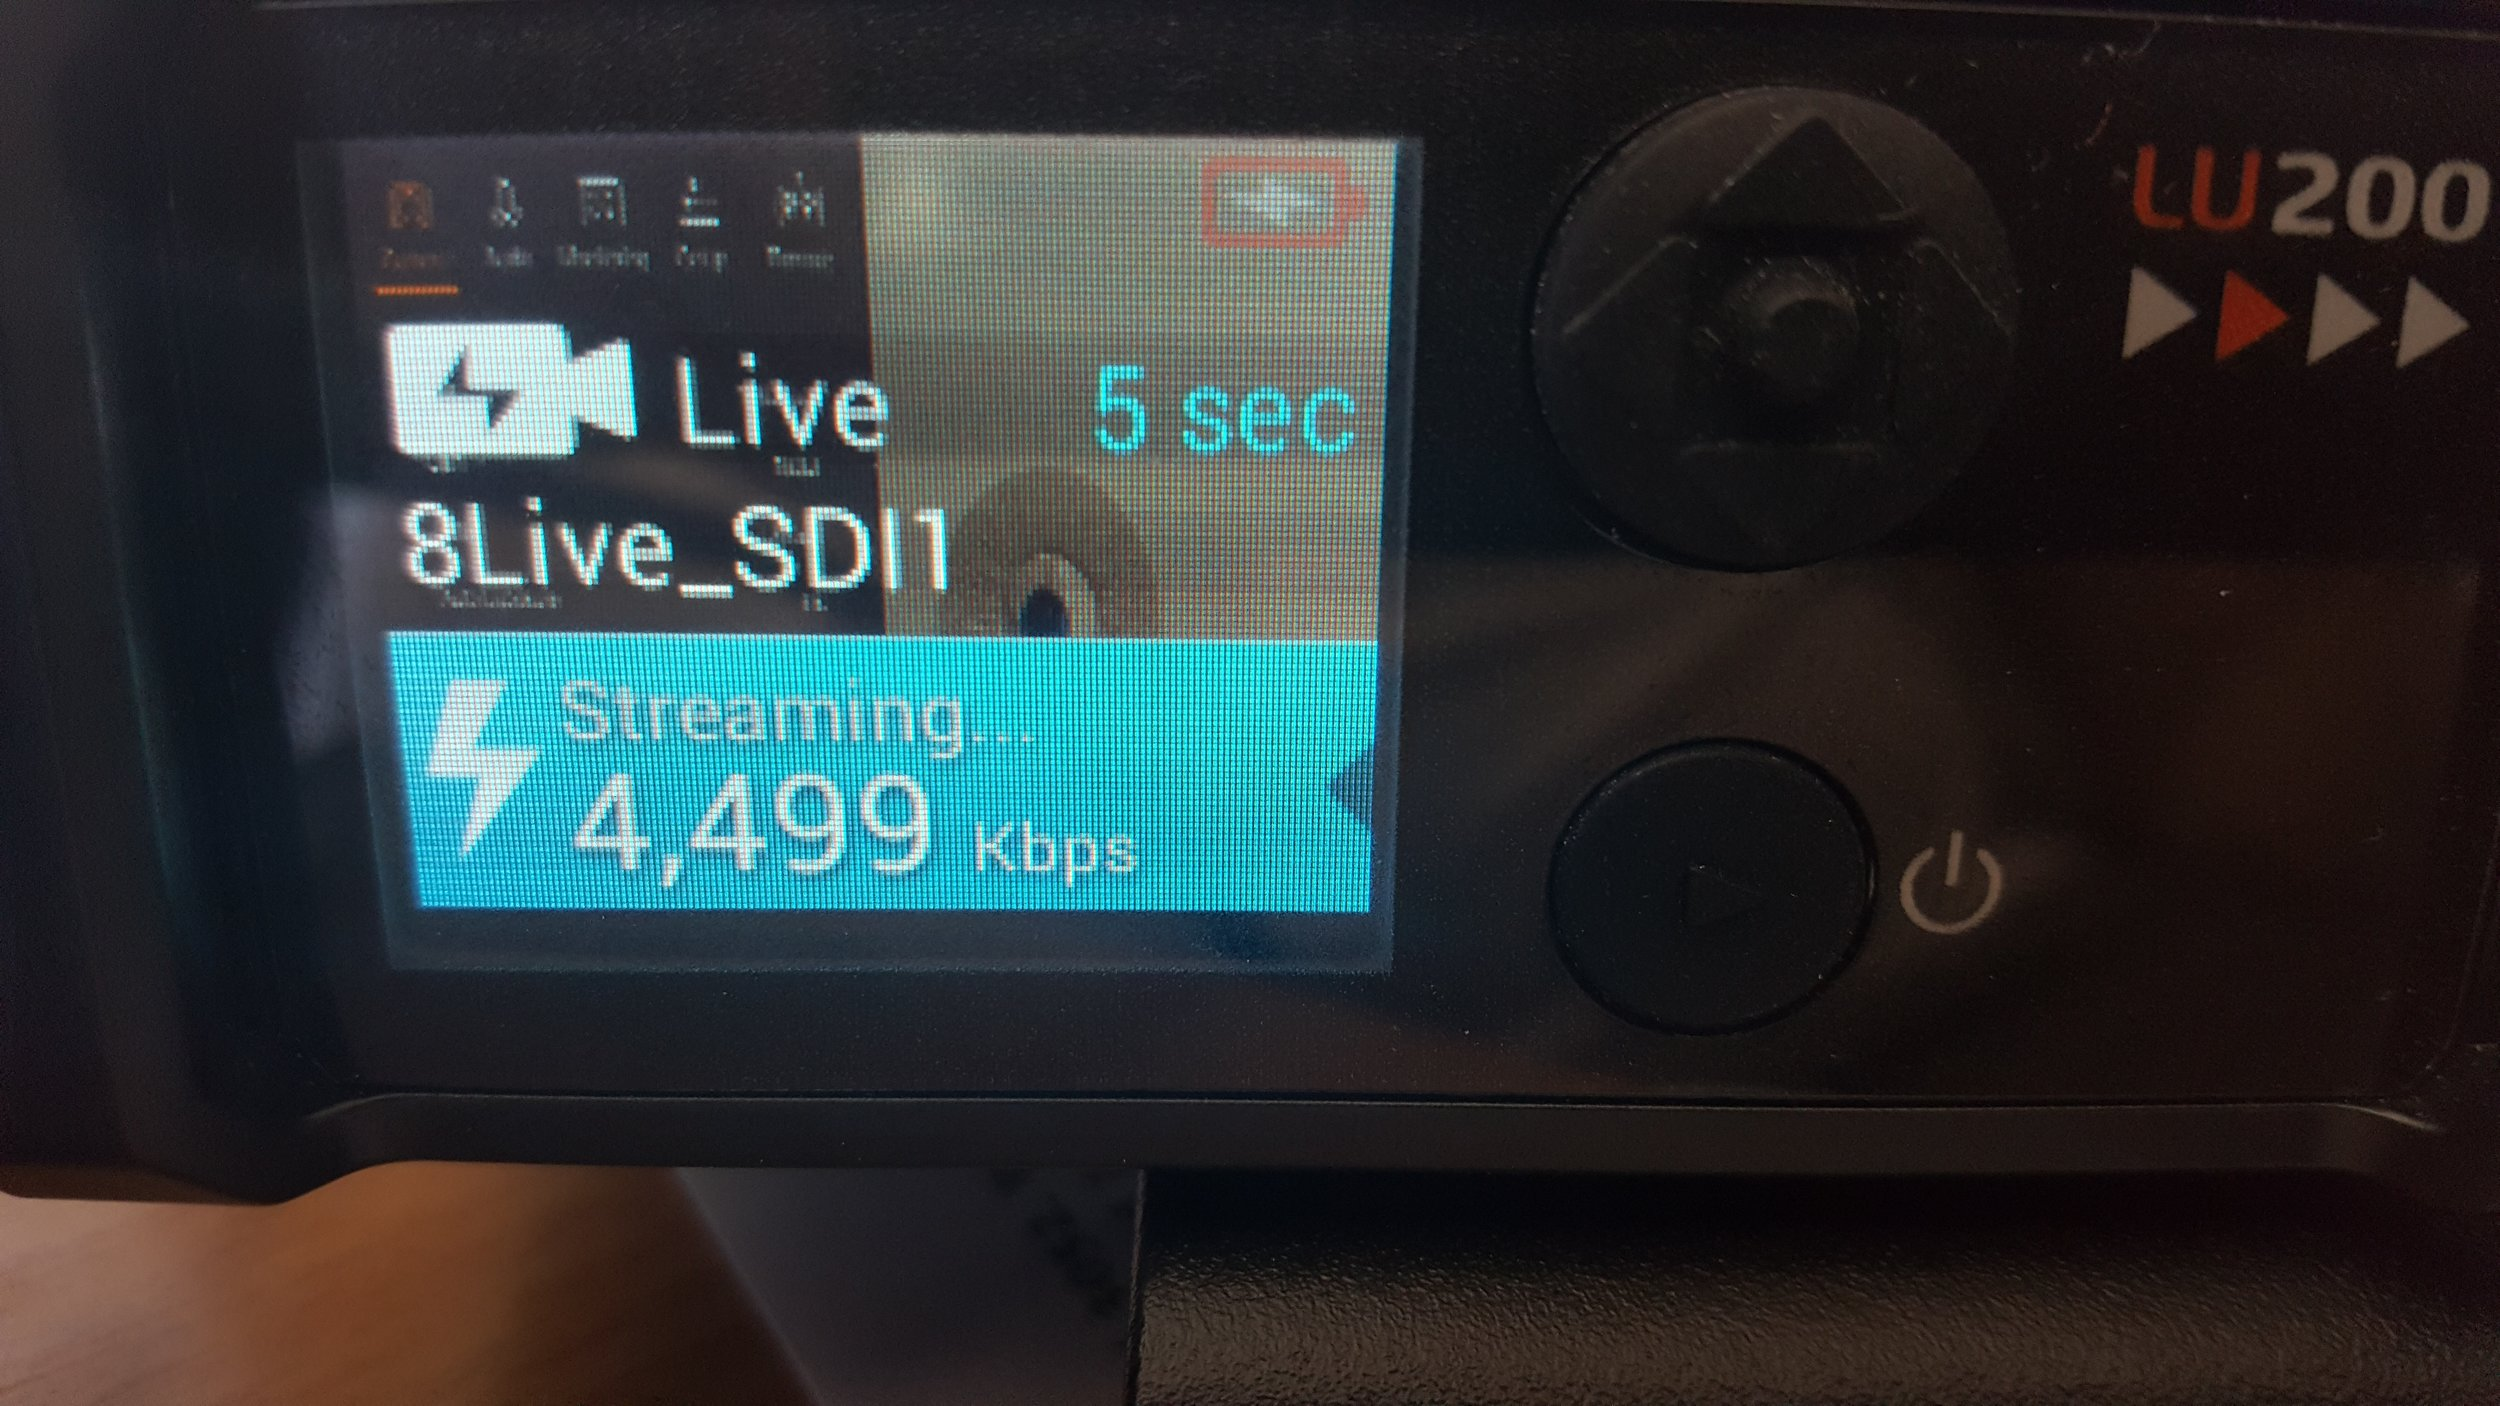 LIVEU UPLINK - We can provide instant live broadcast feeds through our LiveU units. The units have up to six 4G/LTE modems as well as optional KaSat feeds.